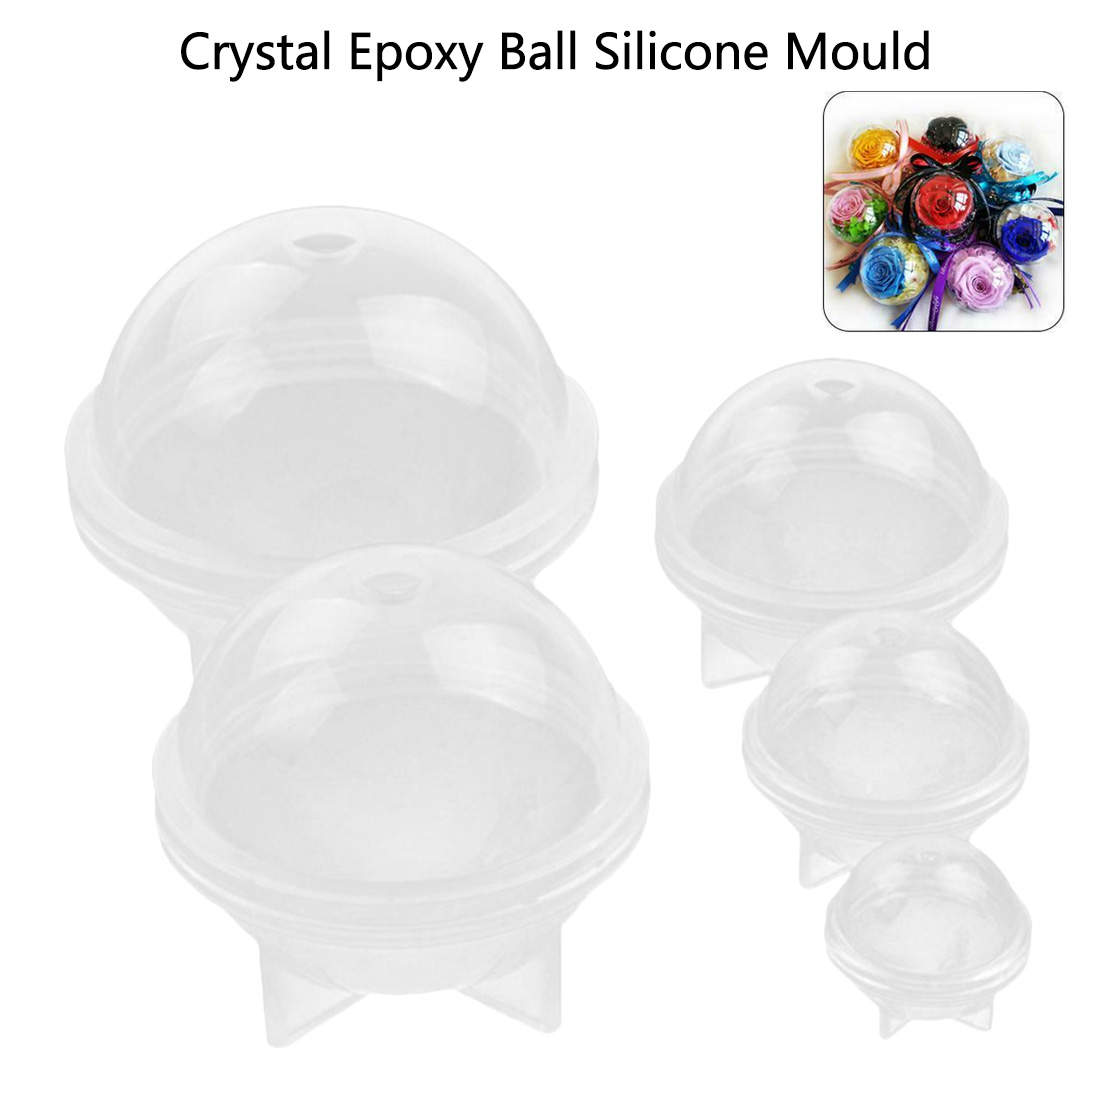 1 PCS Transparent Silicone Mold 3D Ball Jewelry Making Tool Moulds UV Resin Epoxy Resin Jewelry Epoksi Silikon Kalip